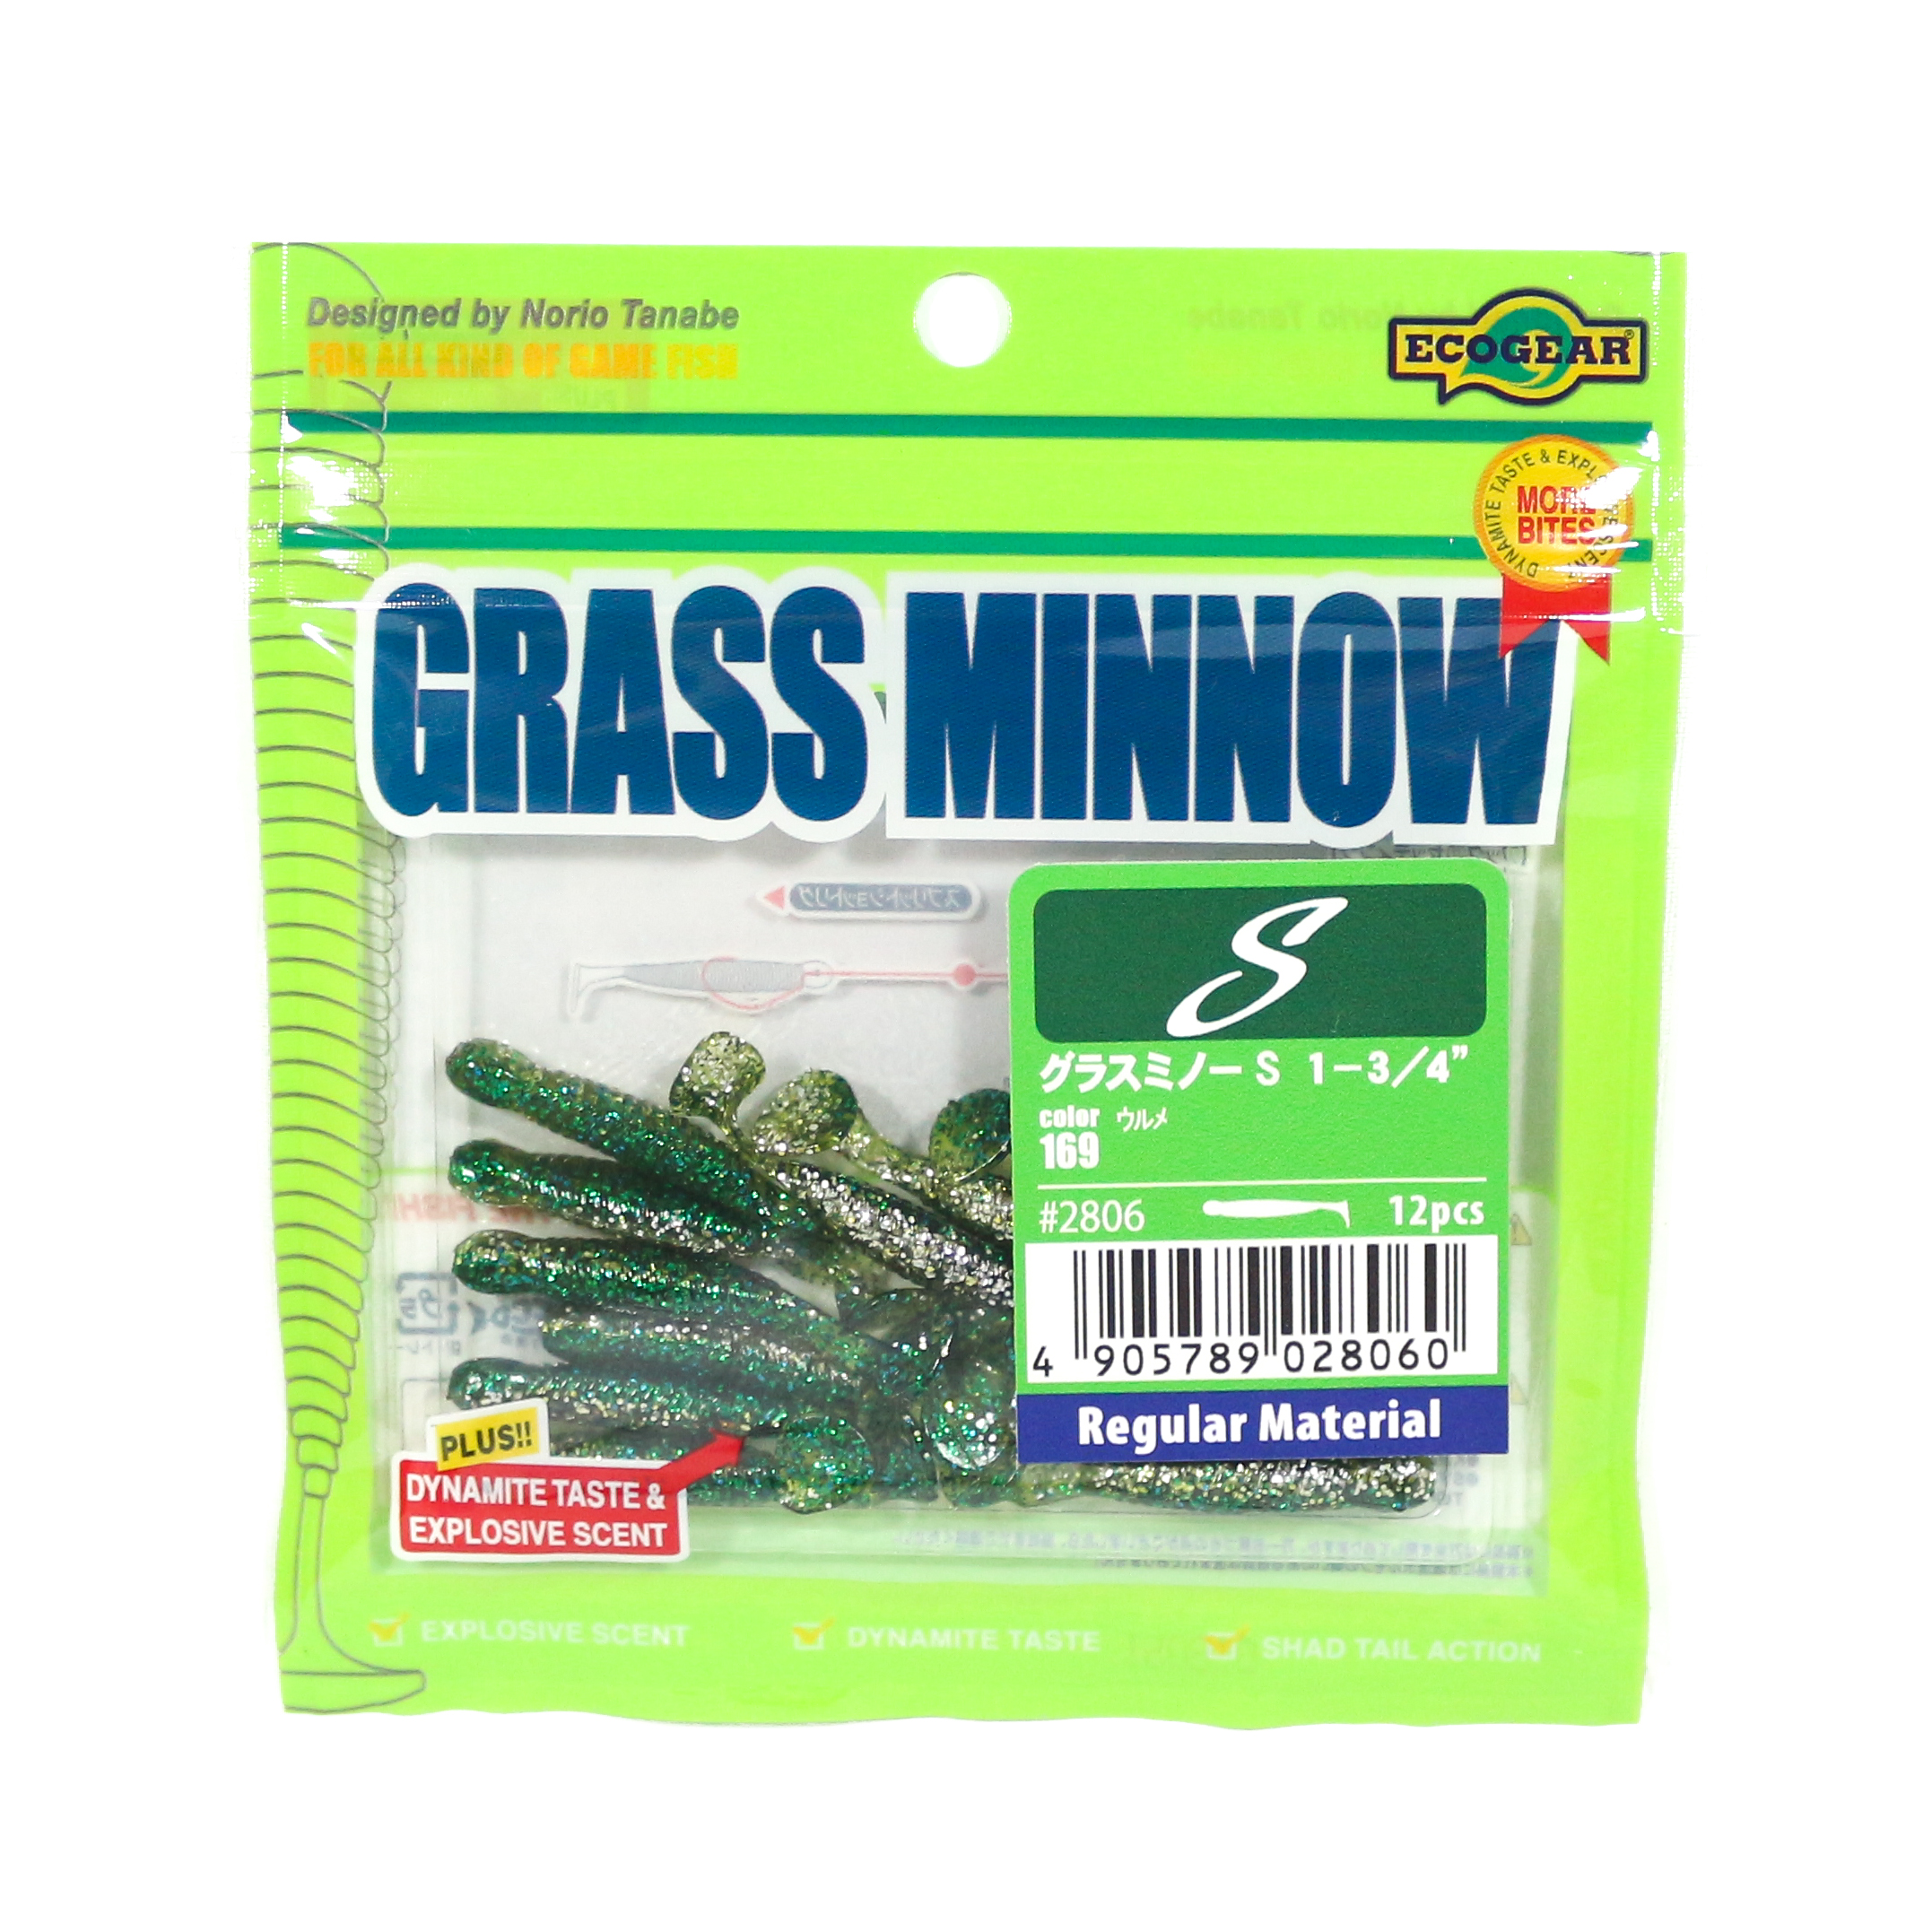 Ecogear Soft Lure Grass Minnow S 1-3/4 Inch 12 piece per pack 169 (8060)